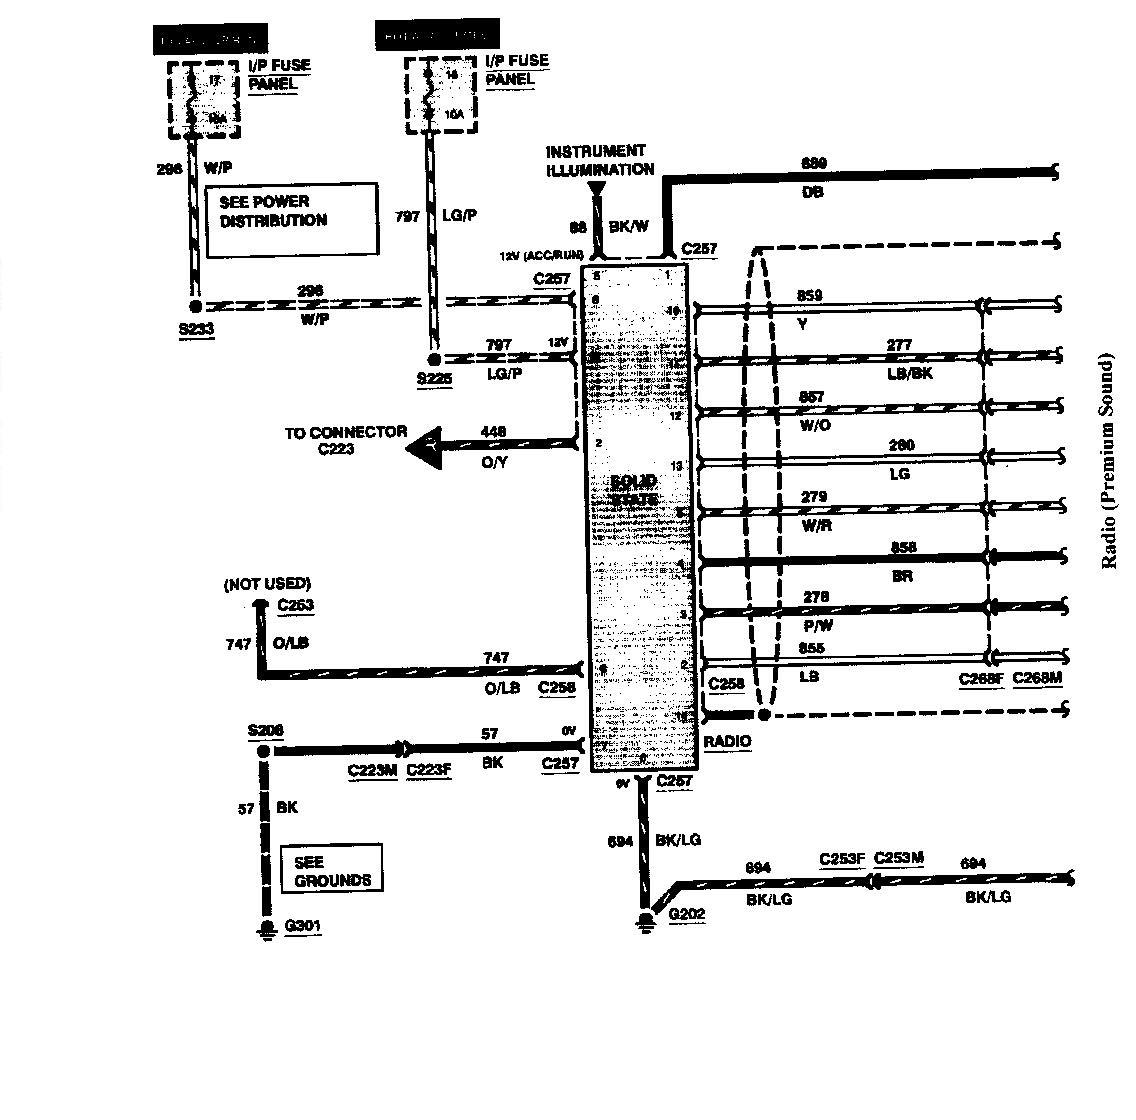 95Mark8 Premium Sound Wiring 95 mark 8 jbl wiring diagram needed lincolns online message forum Ford F-250 Wiring Diagram at alyssarenee.co